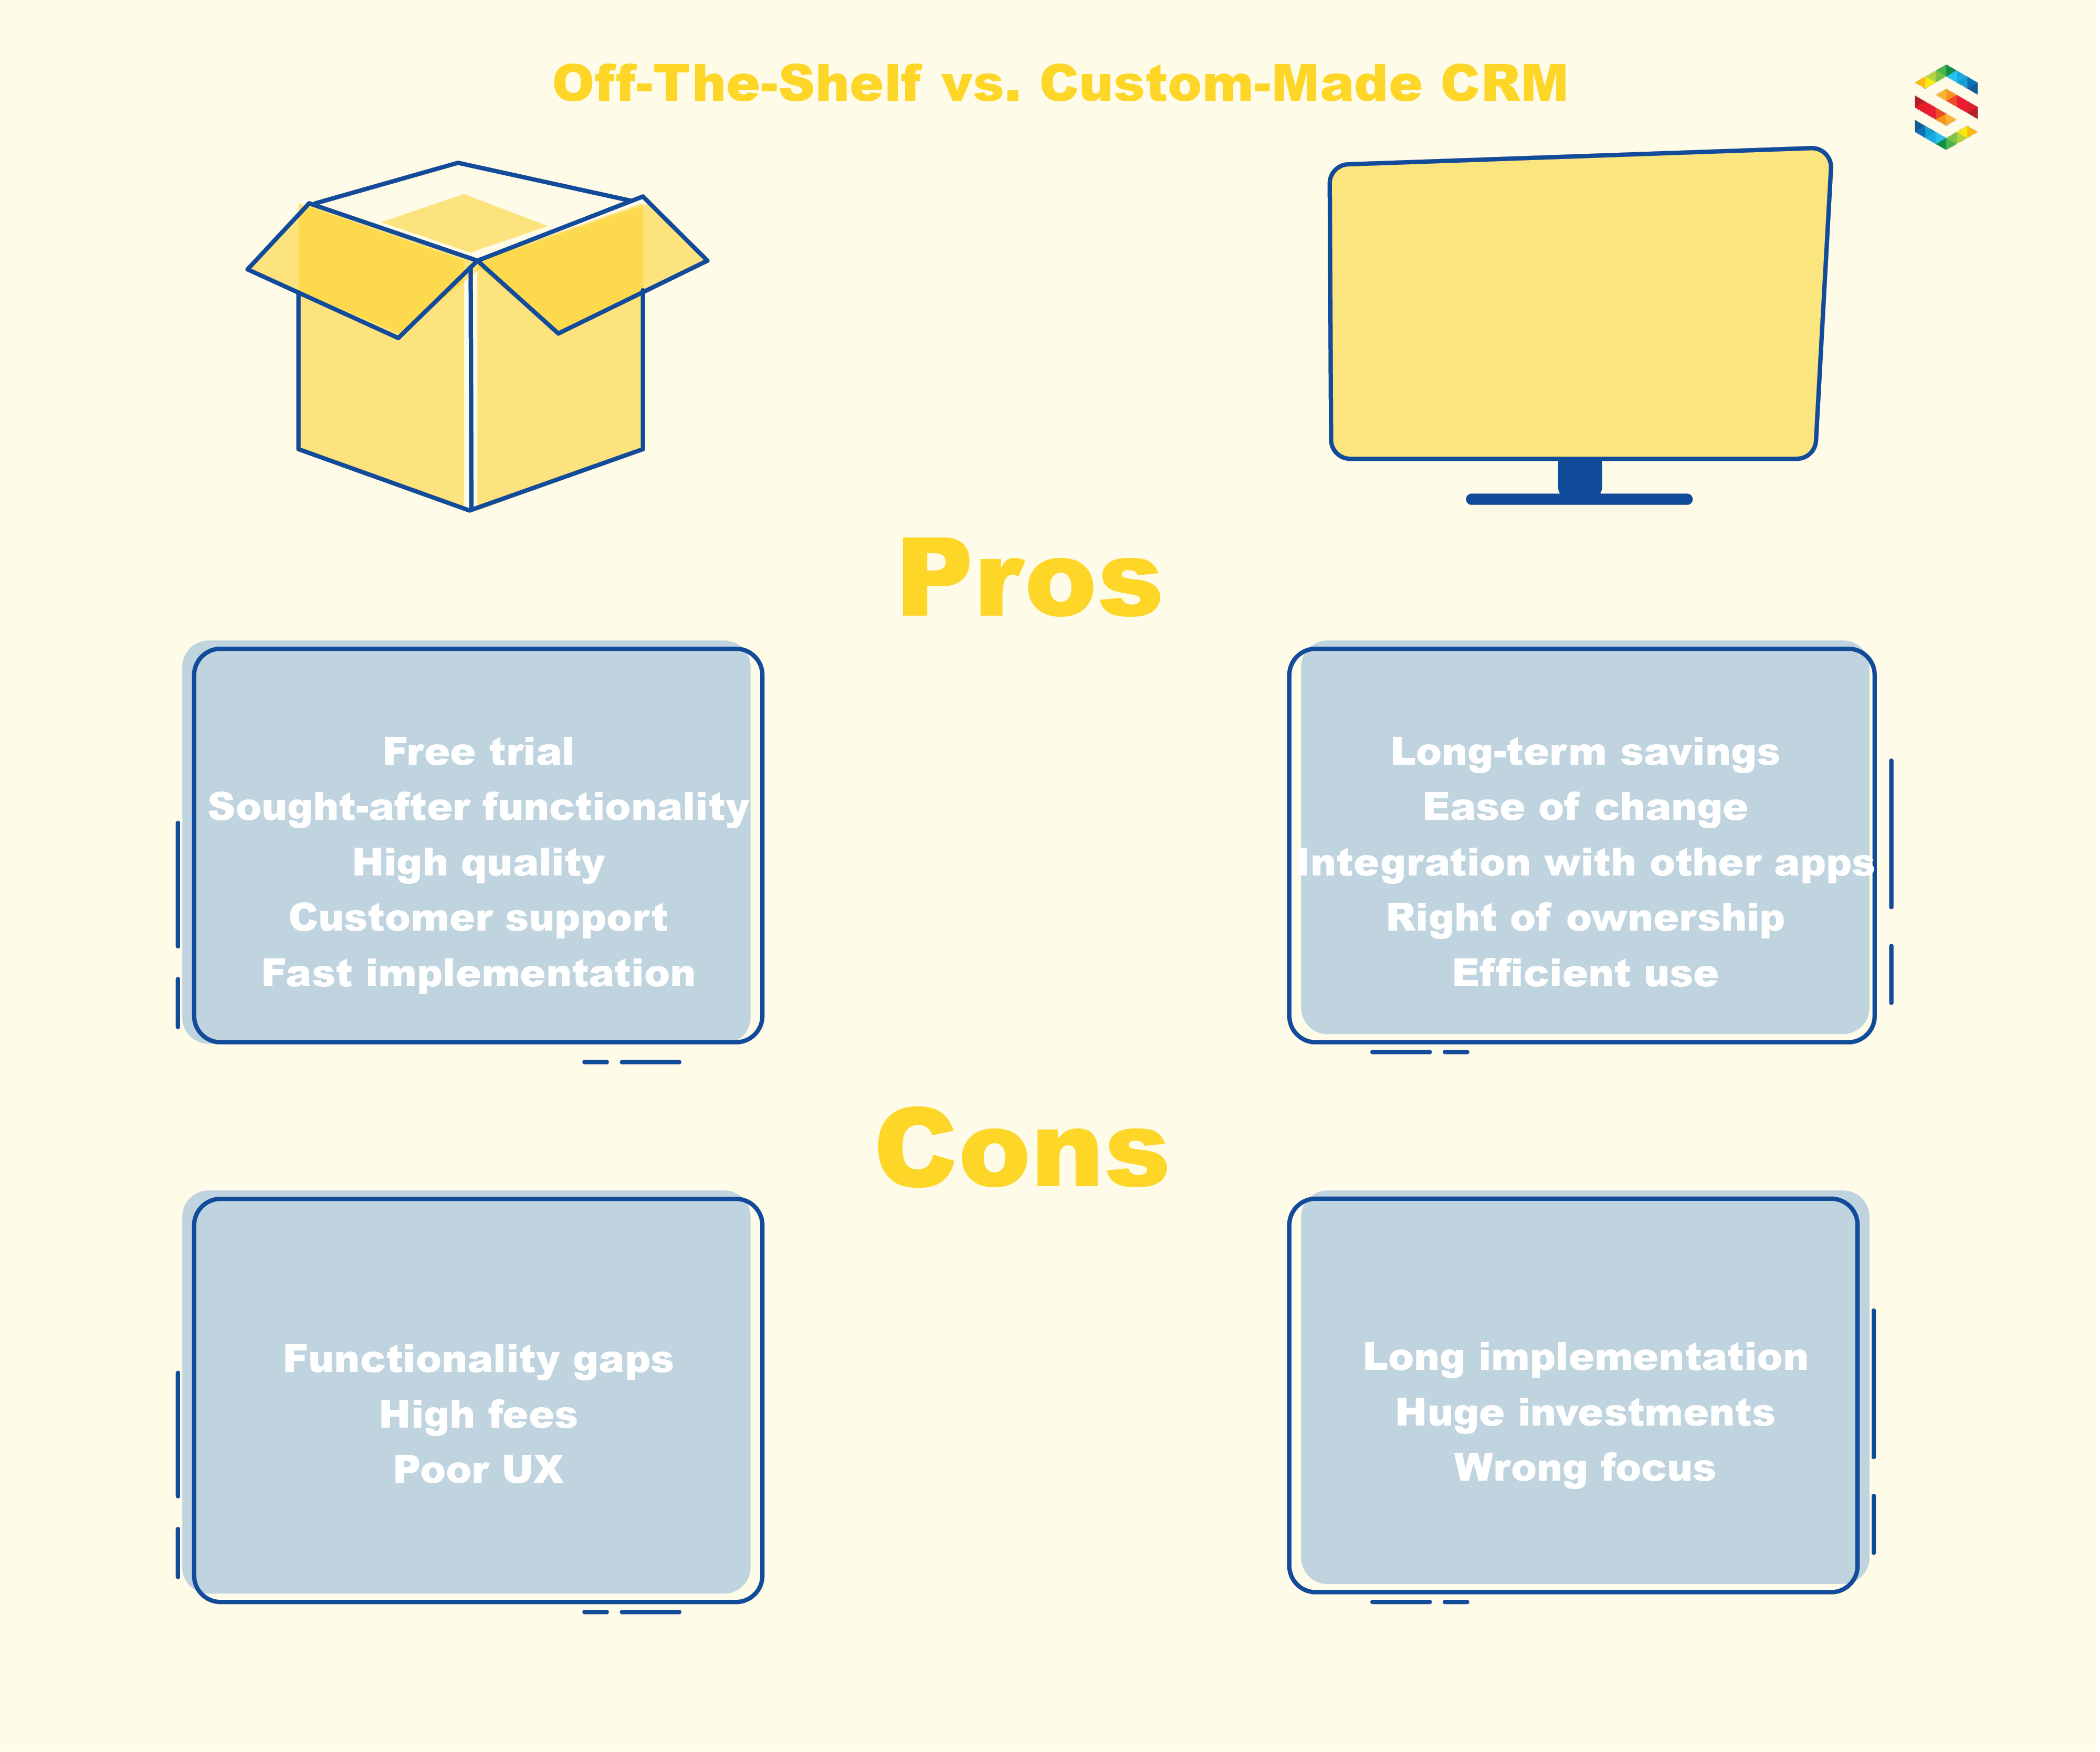 Pros and cons of off-the-shelf vs. custom CRM